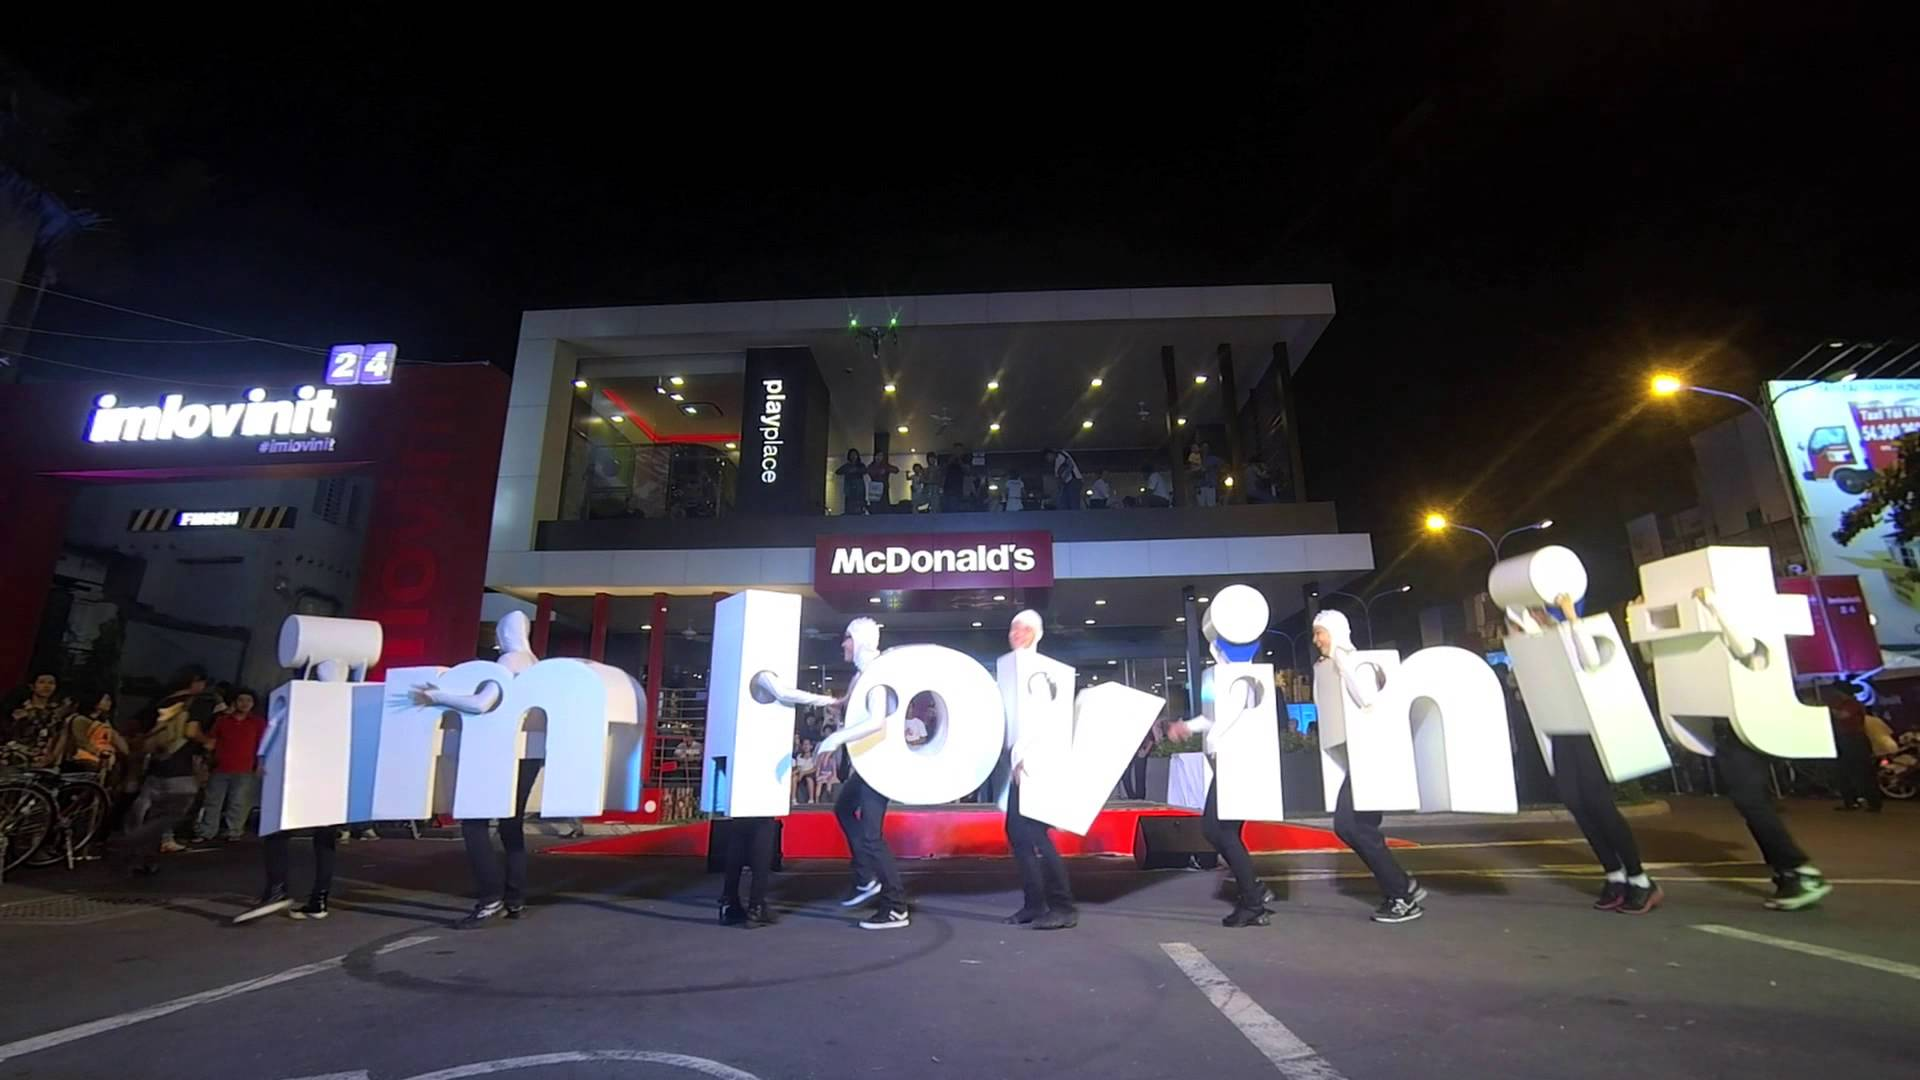 McDonald's give 24 gifts of joy for 24 cities in 24 hours